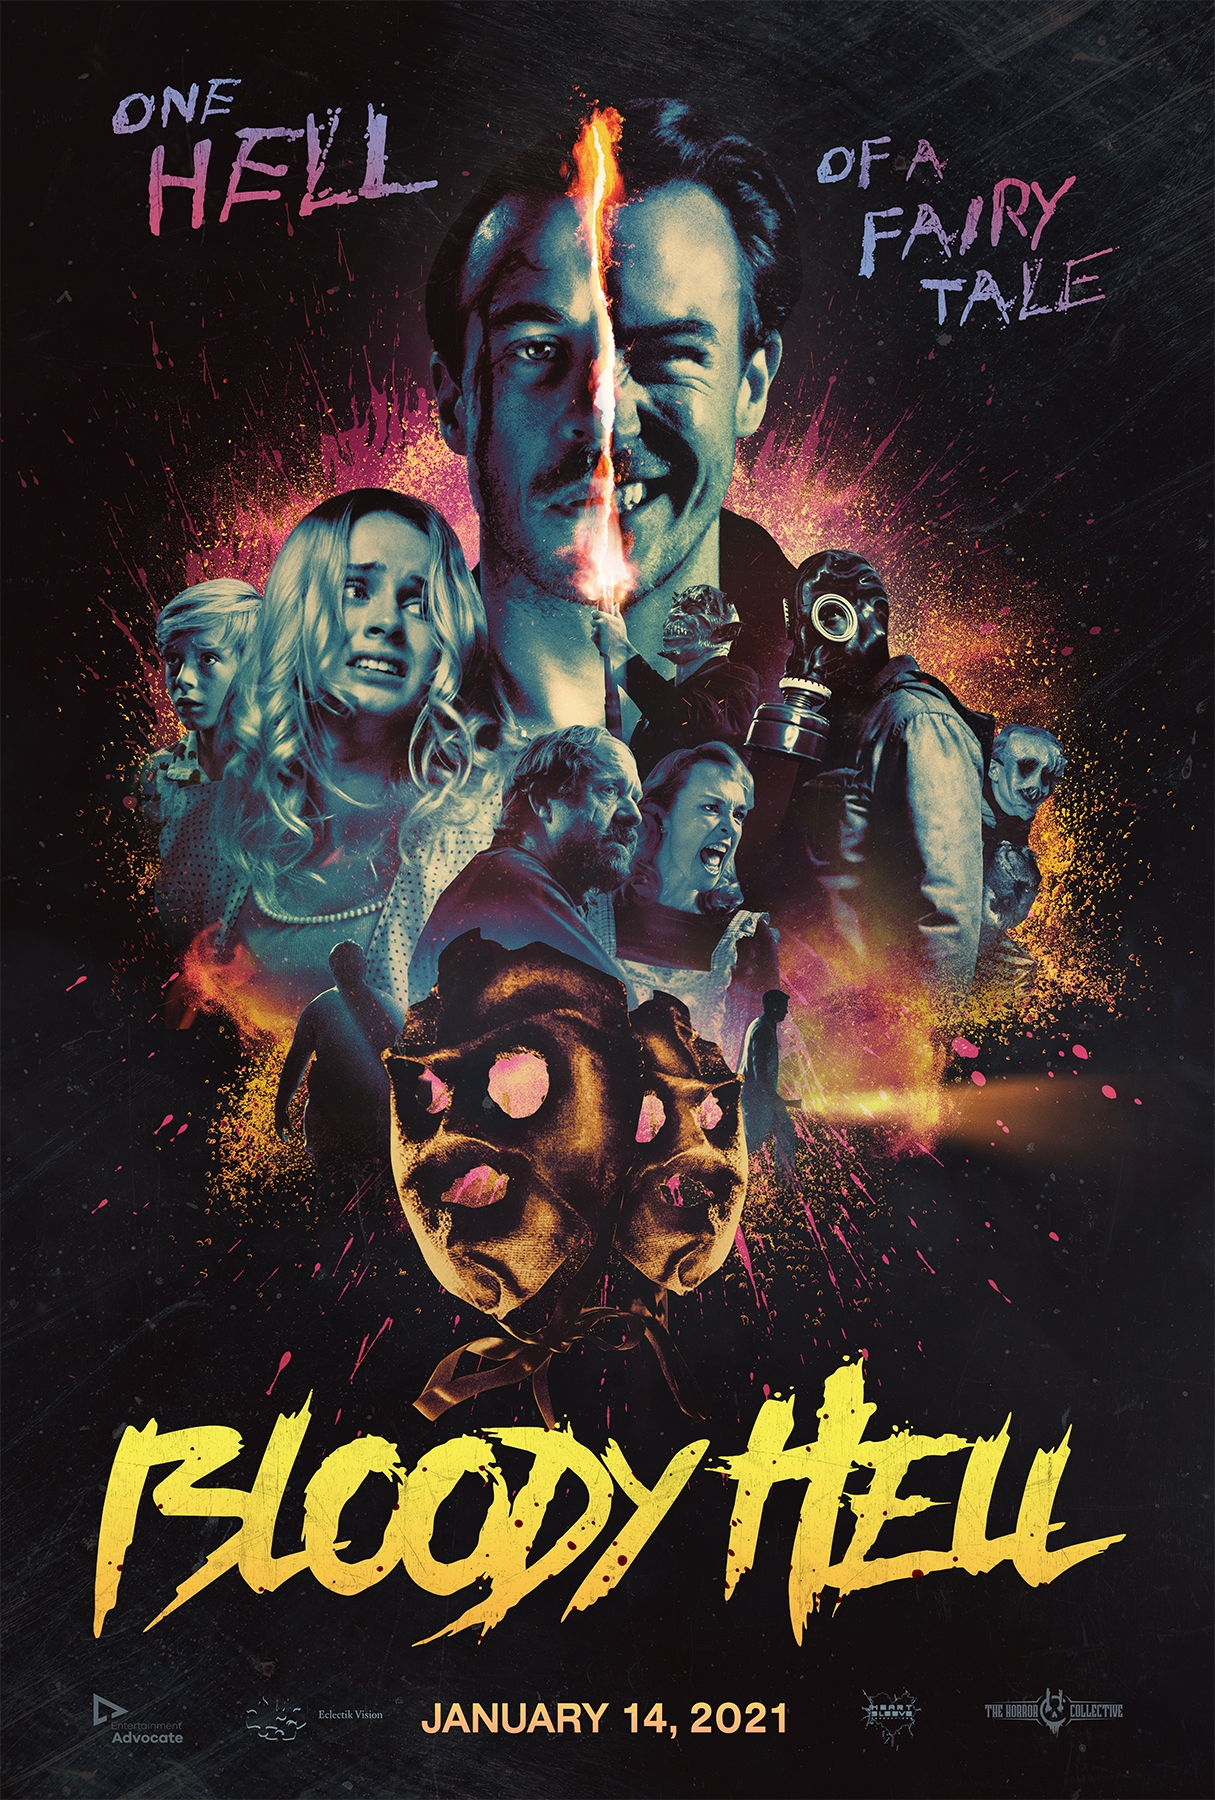 BLOODY HELL Escapes into Select Theaters, Drive-Ins, On Demand (US / 14 January) & Blu-ray/DVD (US / 19 January)